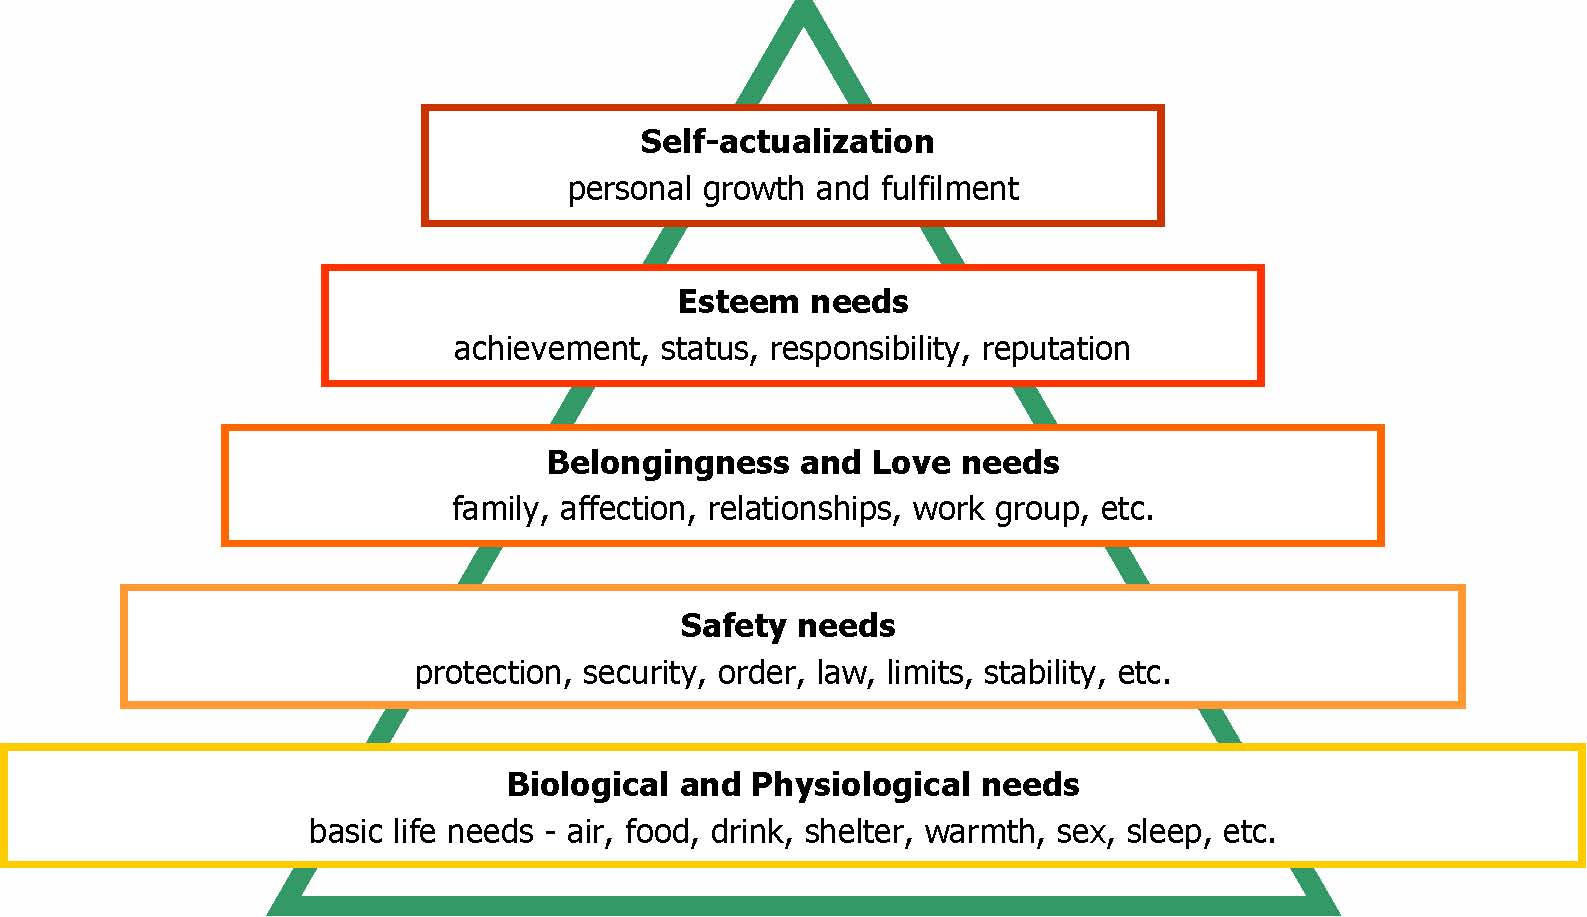 5 Levels Of Maslow I Use In Learning Introduction To The College Experience